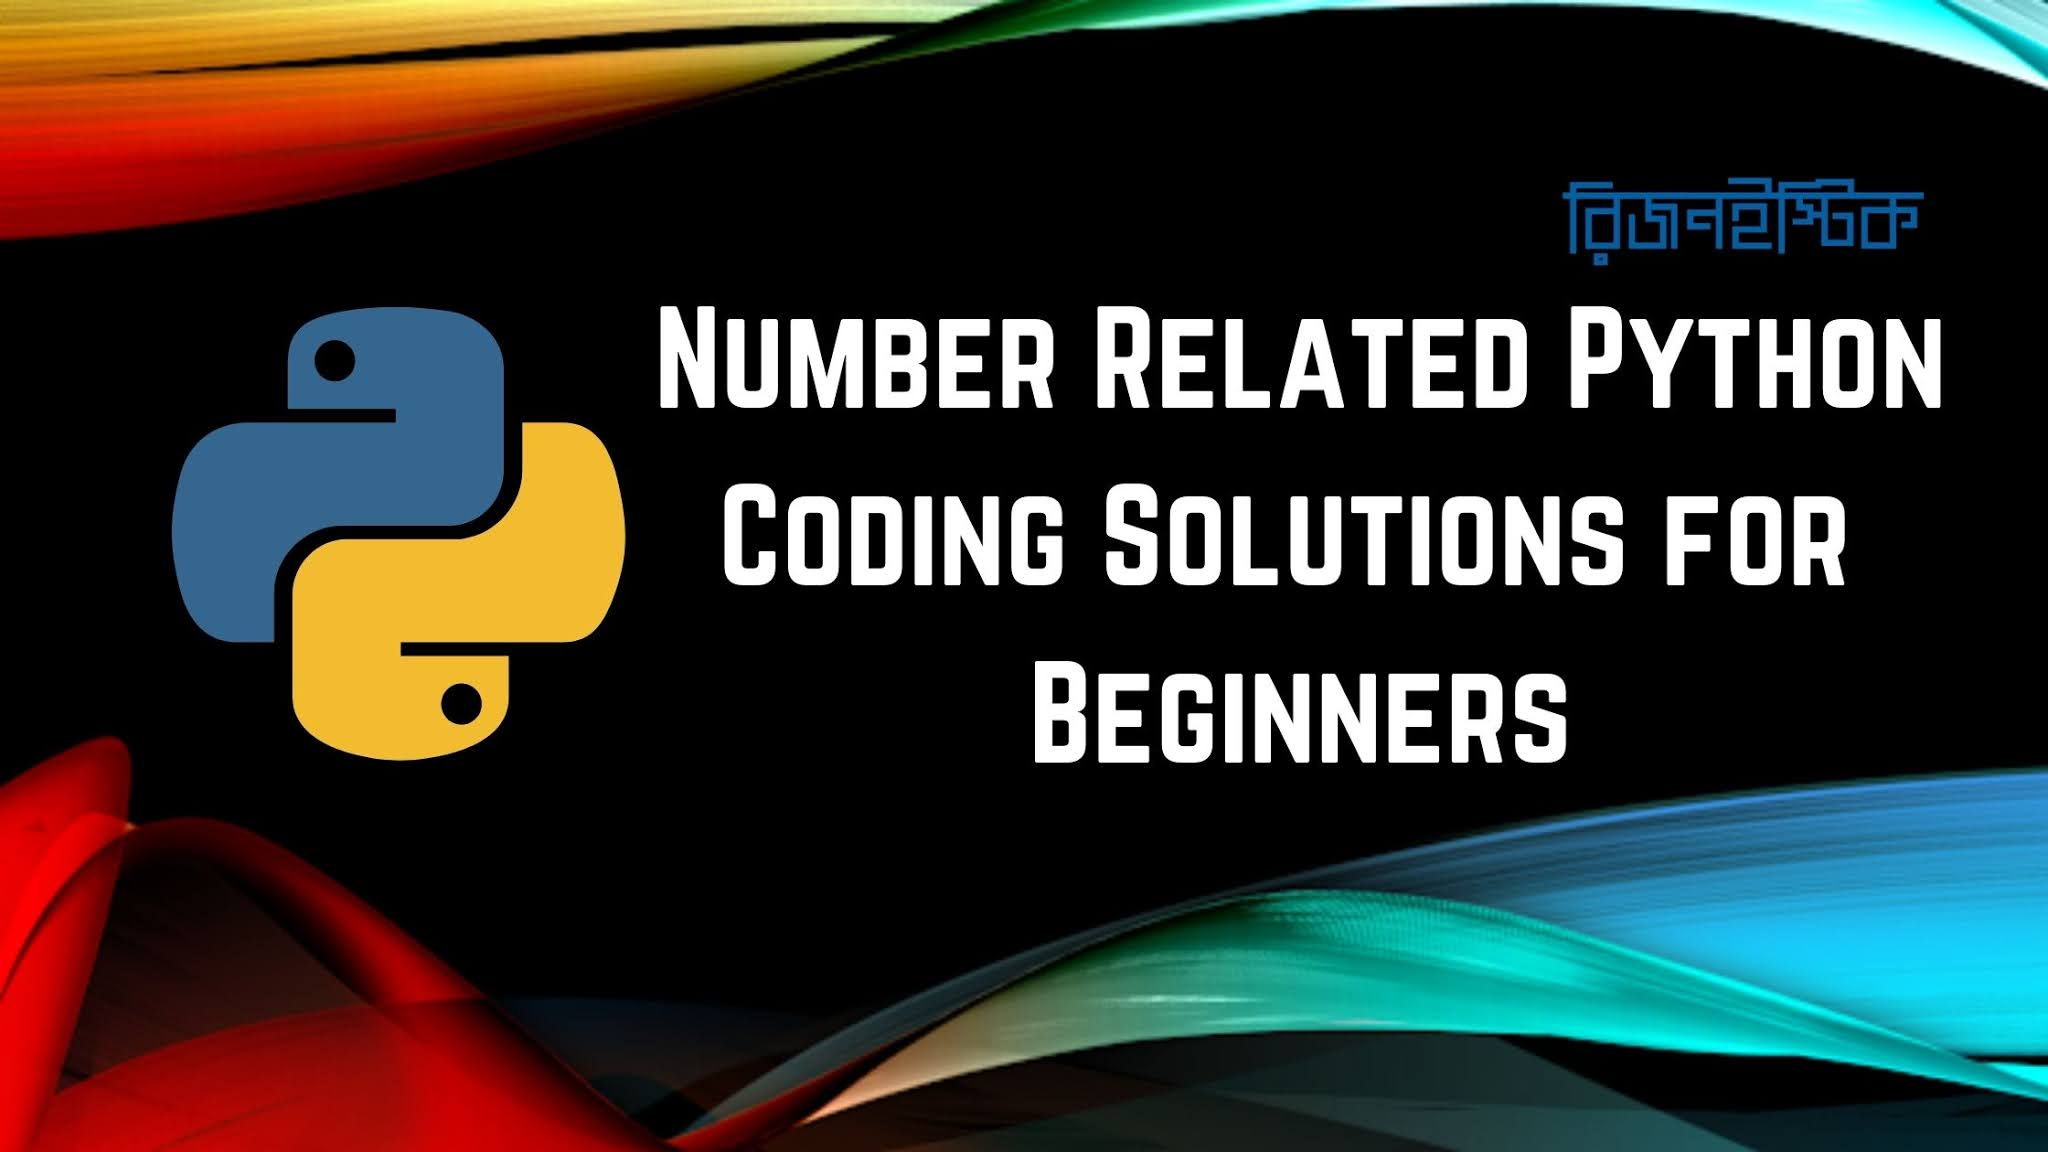 python, python3, problem-solving, programming, coding-challenge, interview, learn-python, python-tutorial, programming-exercises, programming-challenges, programming-fundamentals, programming-contest, python-coding-challenges, python-problem-solving,